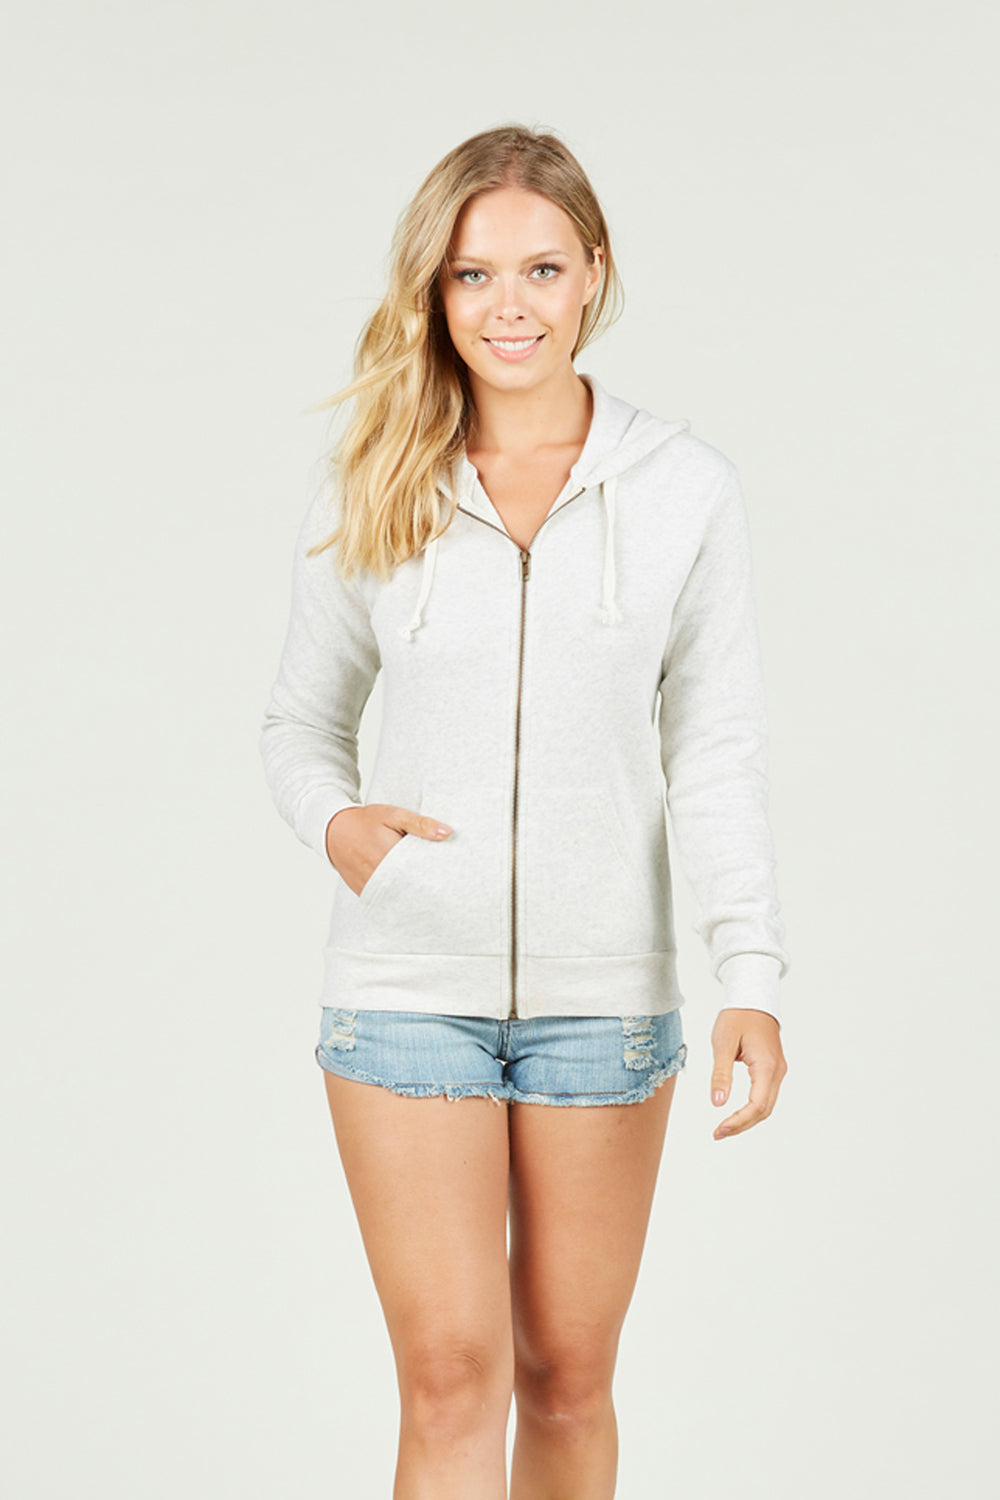 Ocean Drive x Surf Gypsy - Heather Zip Hoodie